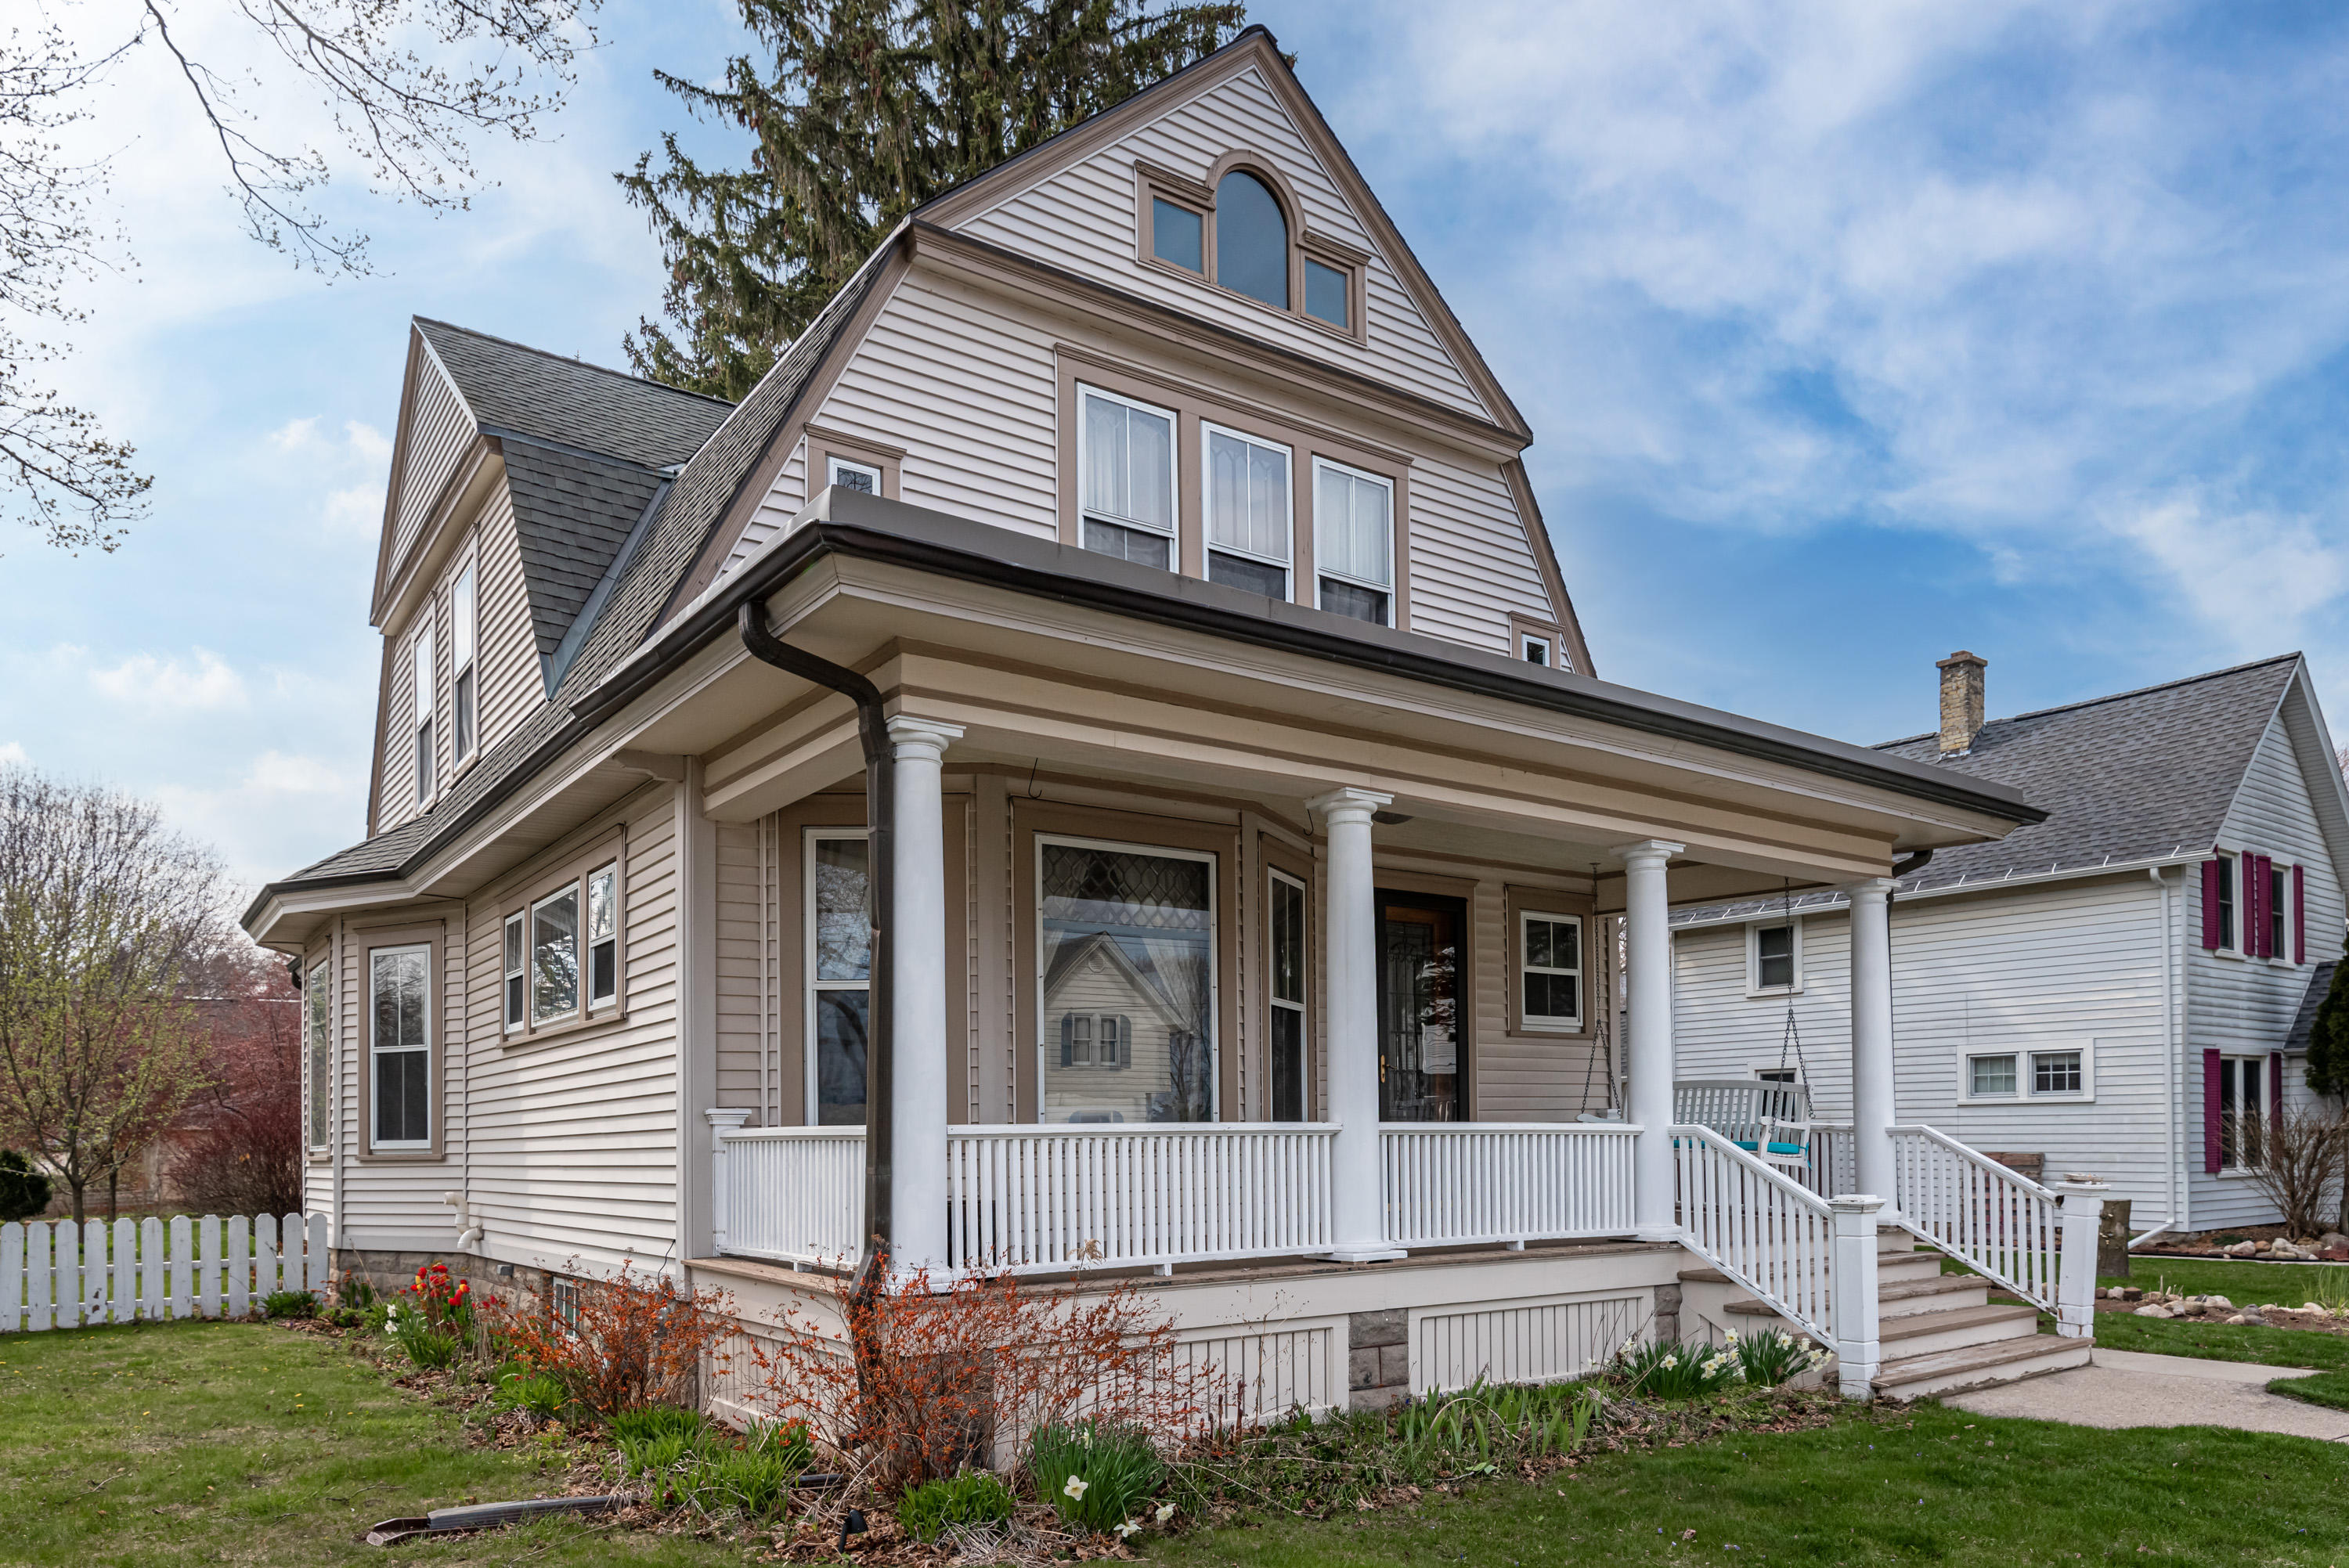 129 S Madison Ave, Port Washington, Wisconsin 53074, 3 Bedrooms Bedrooms, ,2 BathroomsBathrooms,Single Family,For Sale,129 S Madison Ave,2,1736603